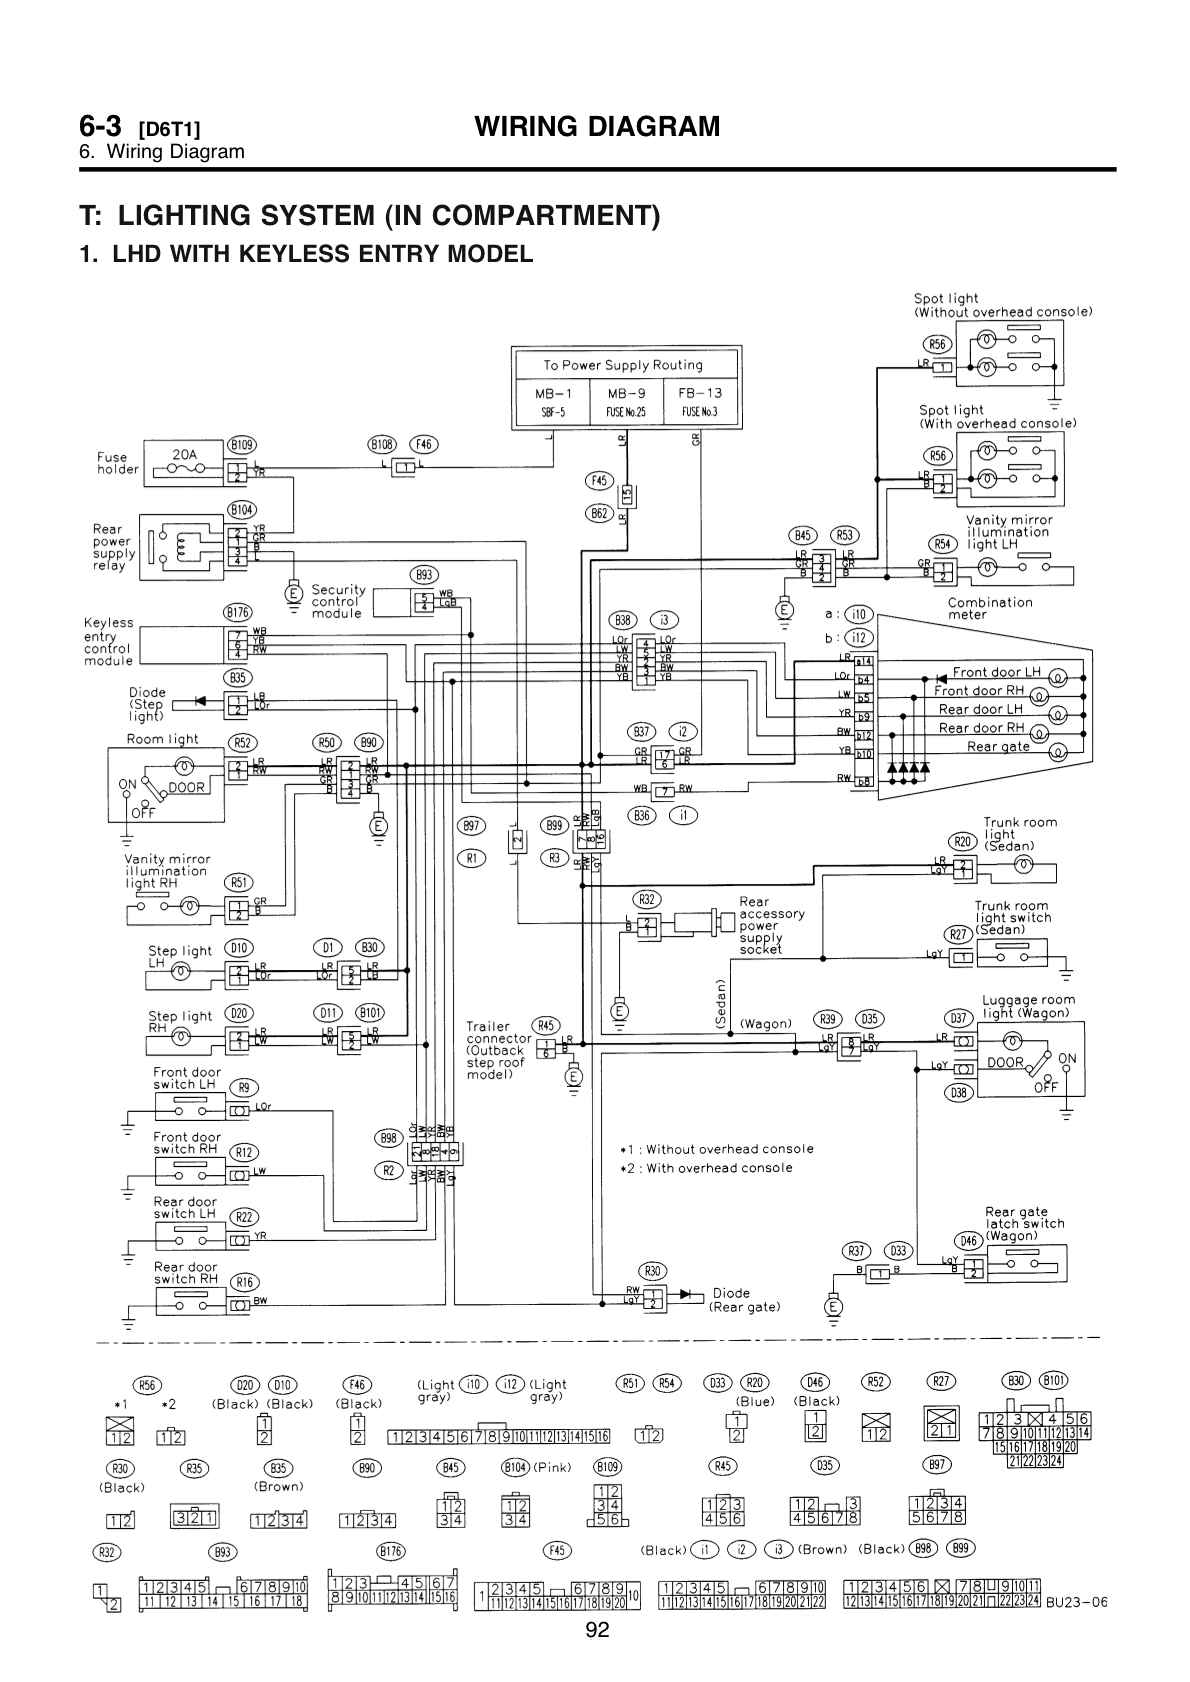 wiring_diagram1 subaru wiring diagrams 1992 subaru legacy heater wiring schematic 2015 wrx stereo wiring diagram at mifinder.co